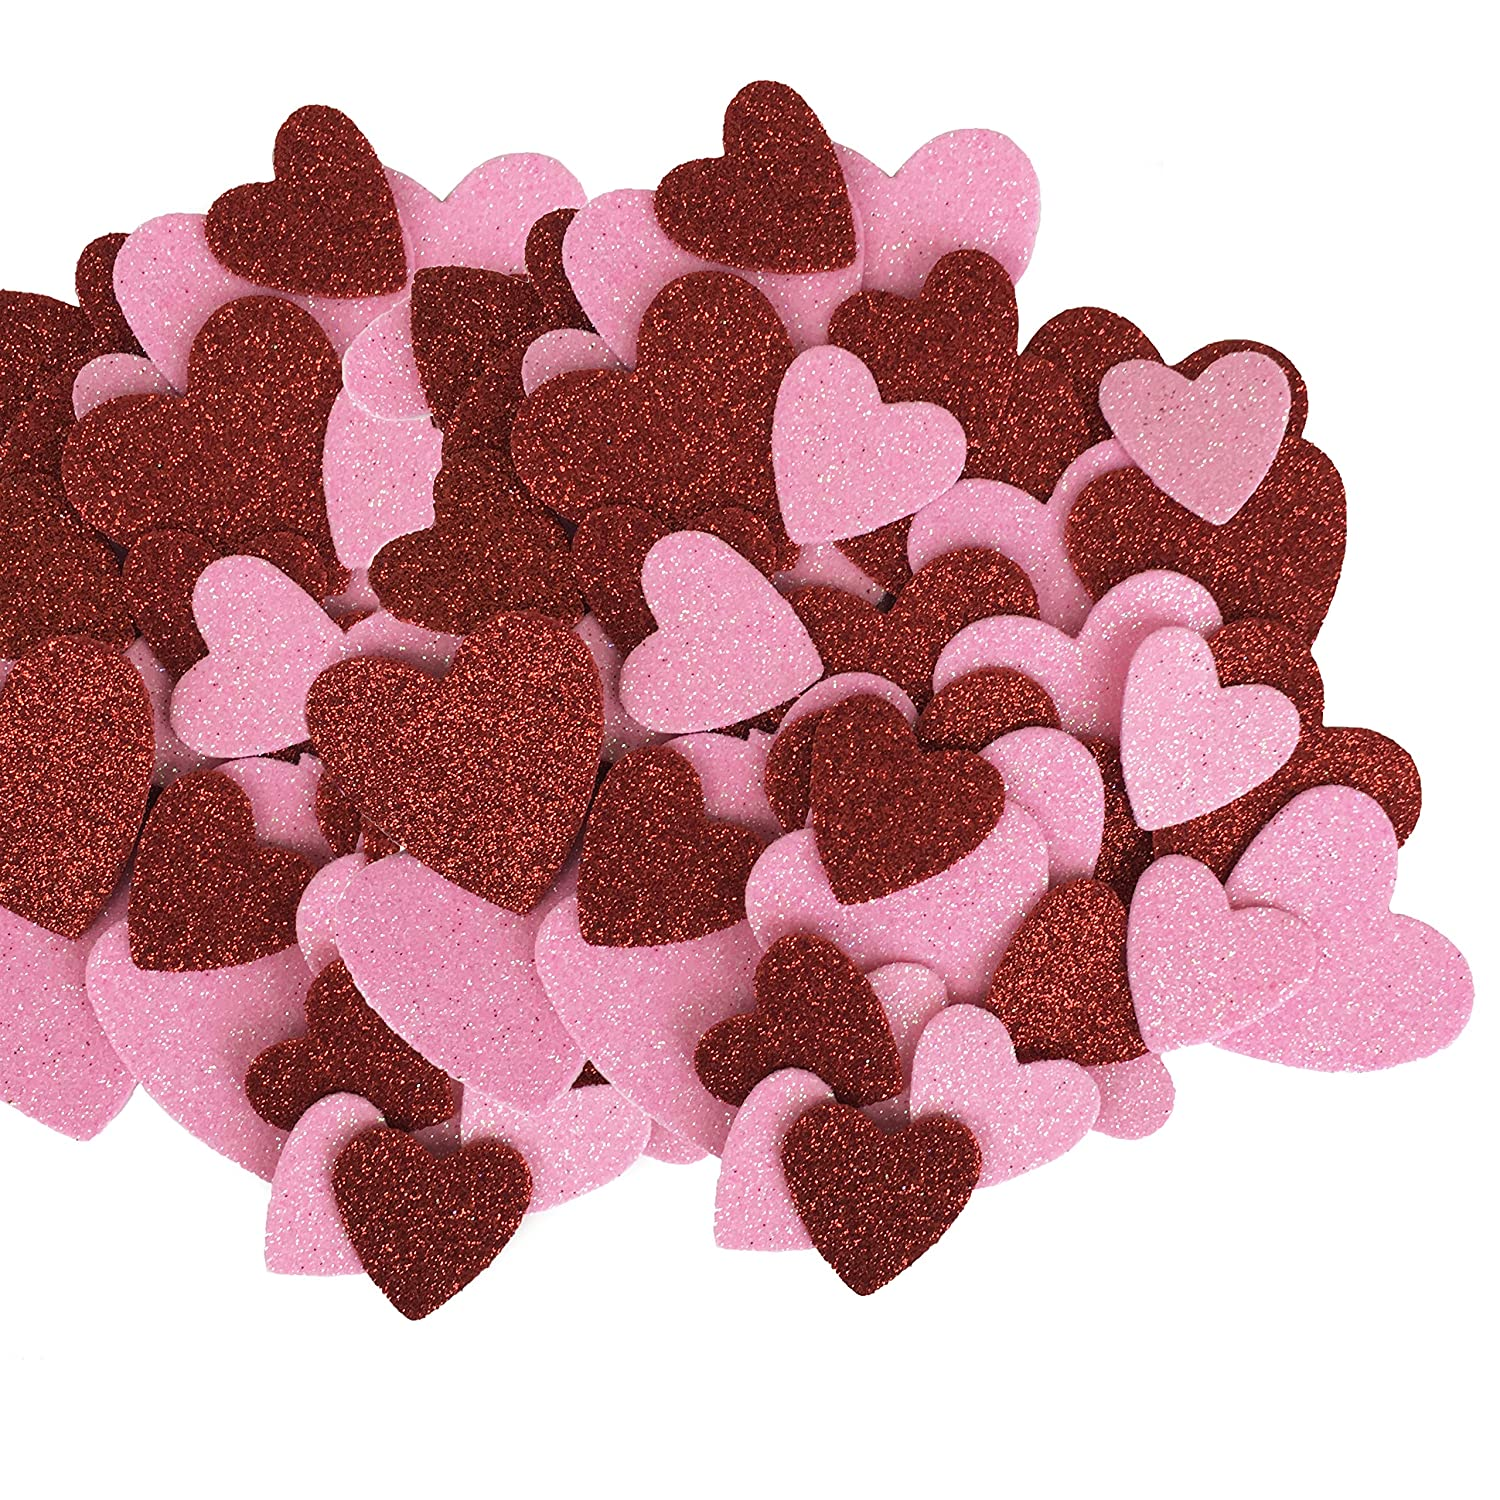 Red & Pink Glitter Hearts Table Scatter - Valentines, Weddings, Crafts Greenbrier 4336865685